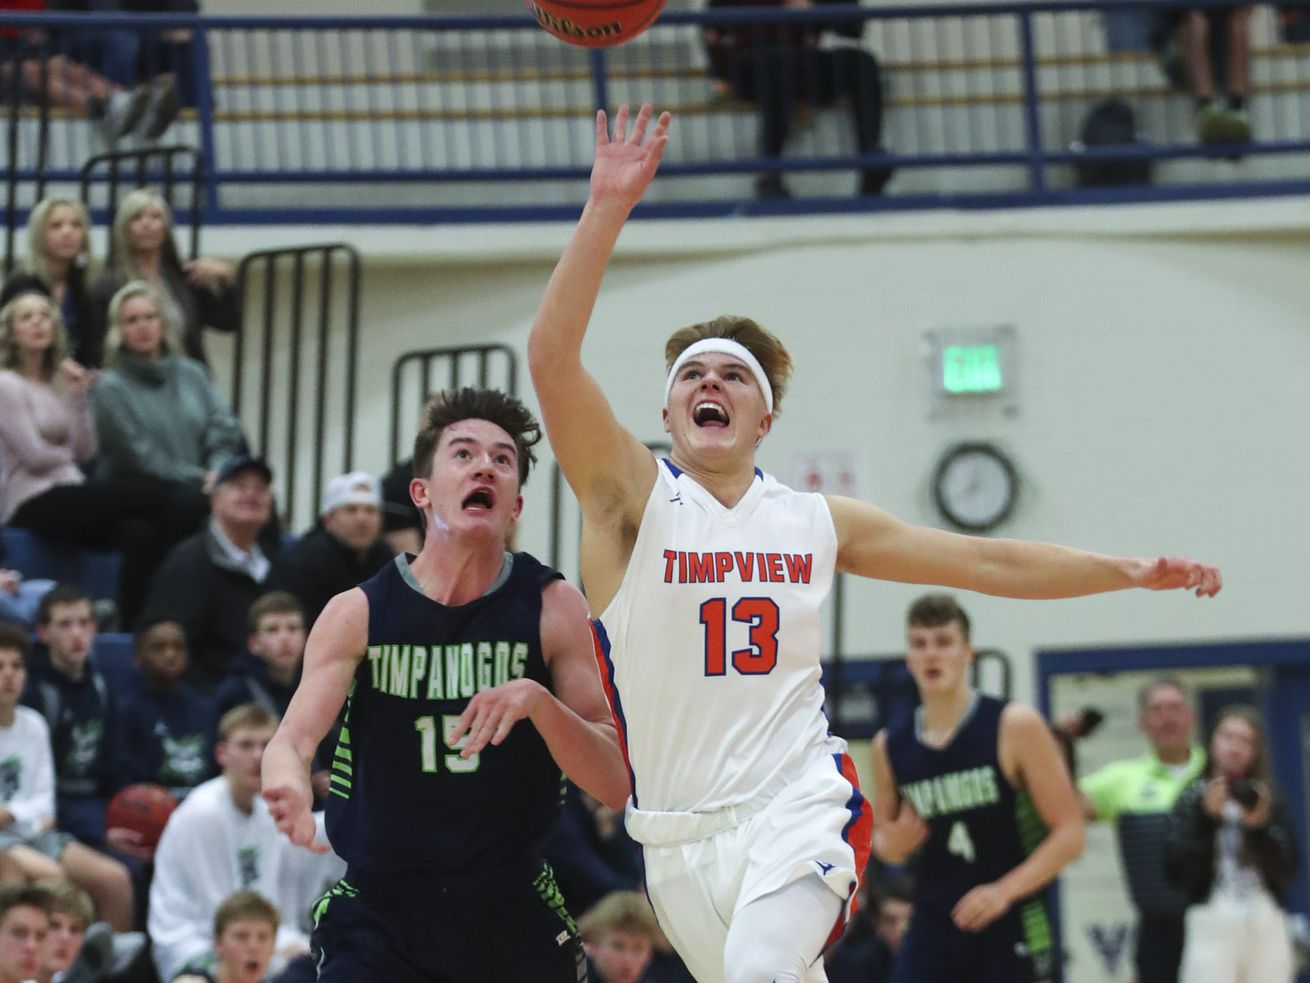 Action in the Timpanogos at Timpview boy's basketball game in Provo on Tuesday, Jan. 7, 2020.